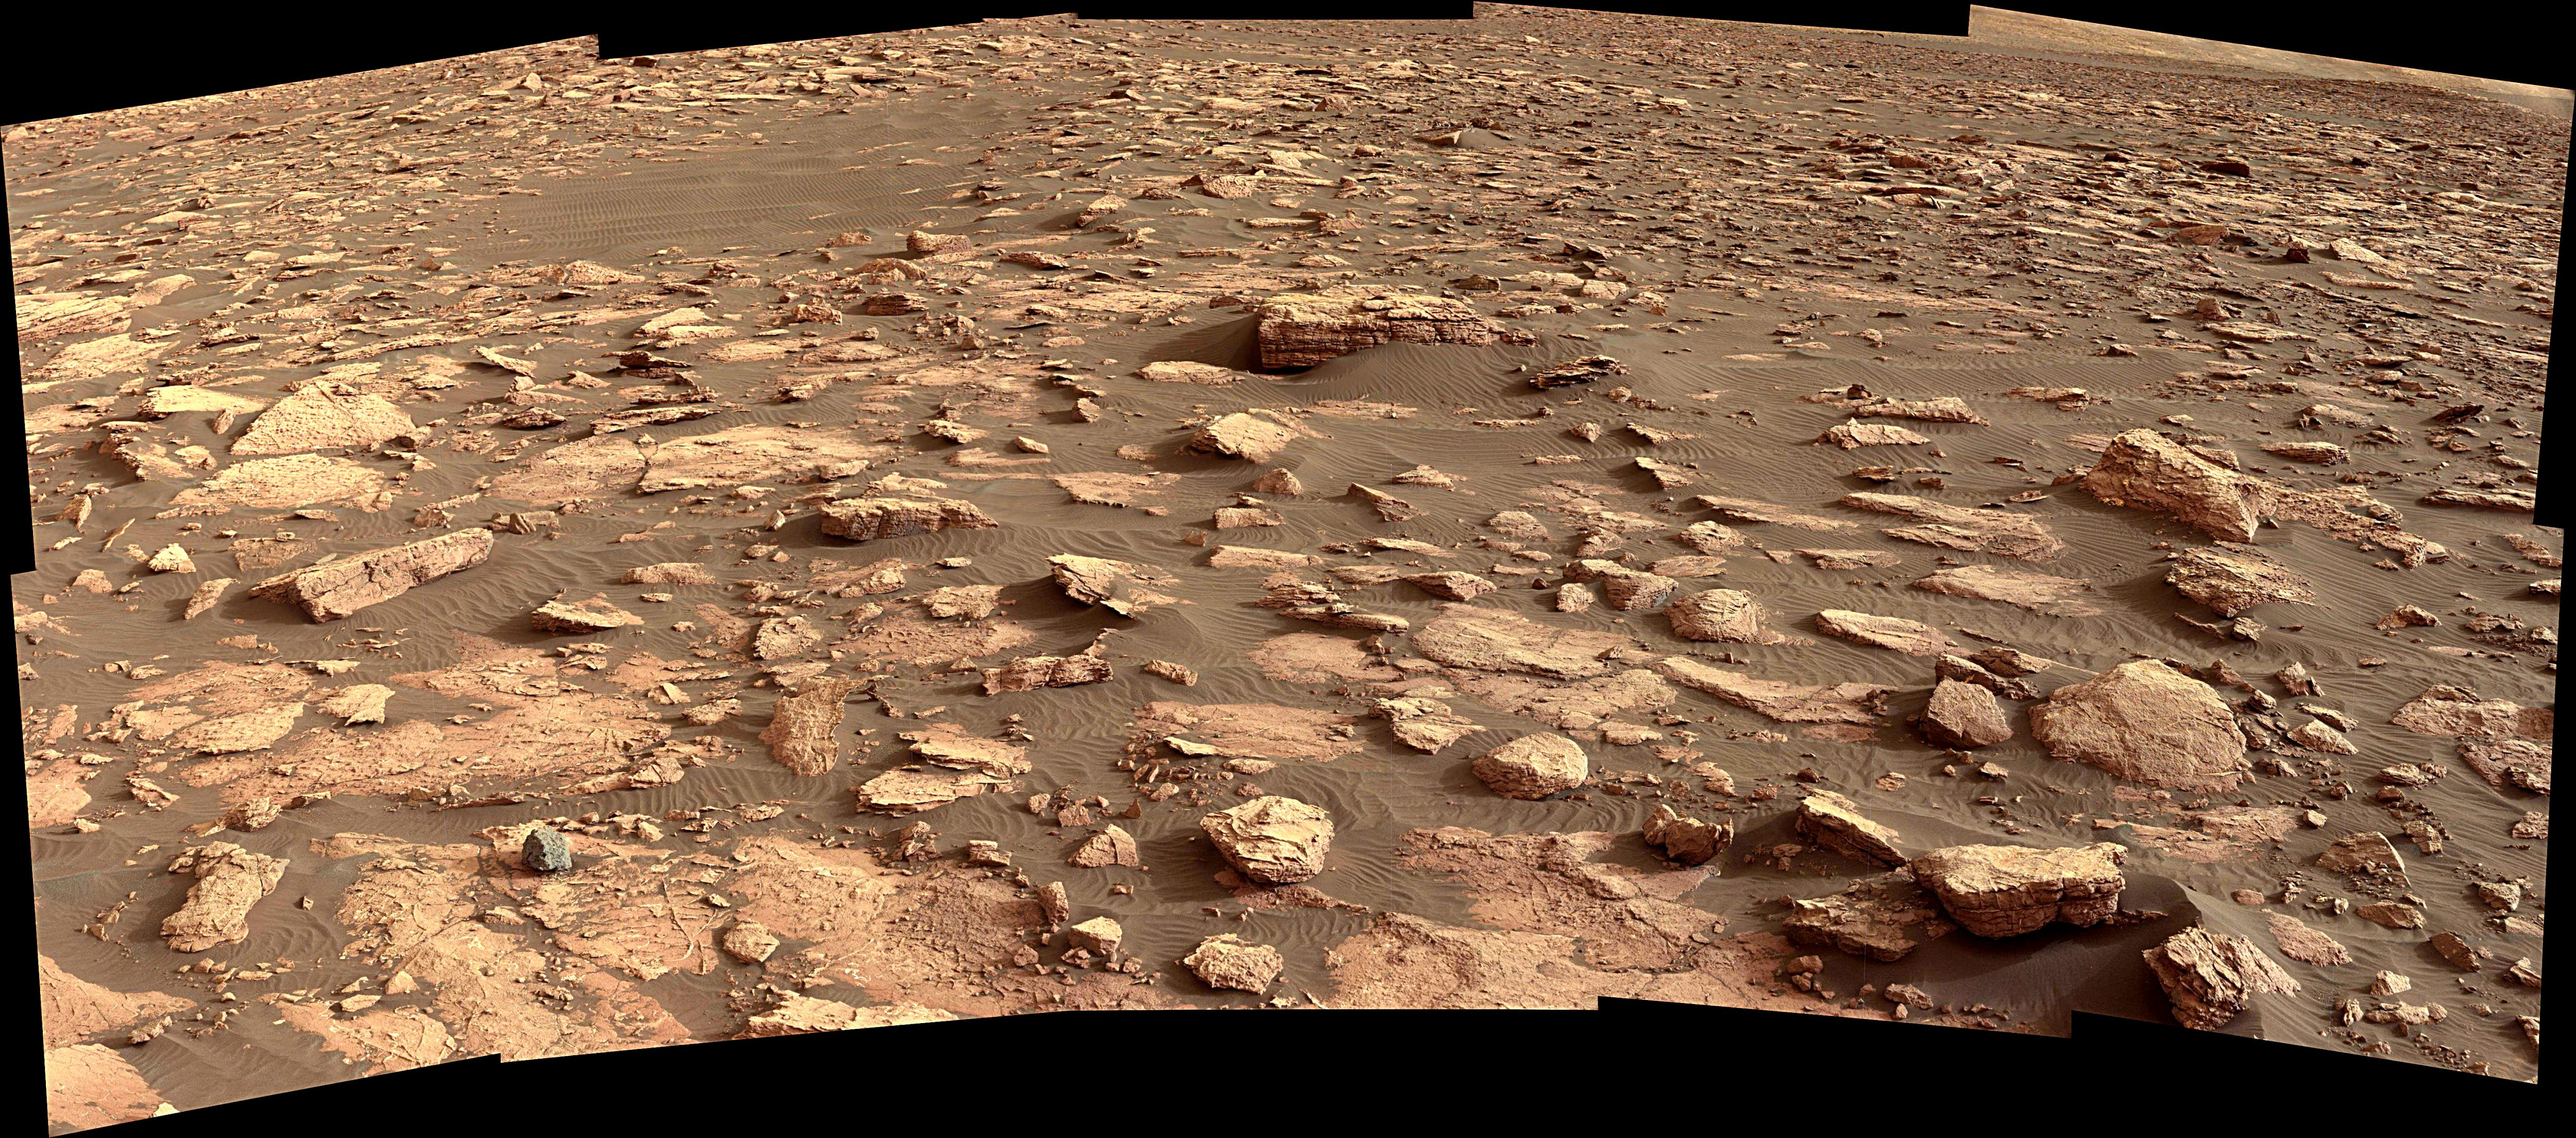 panoramic-curiosity-rover-view-1e-sol-1512-was-life-on-mars